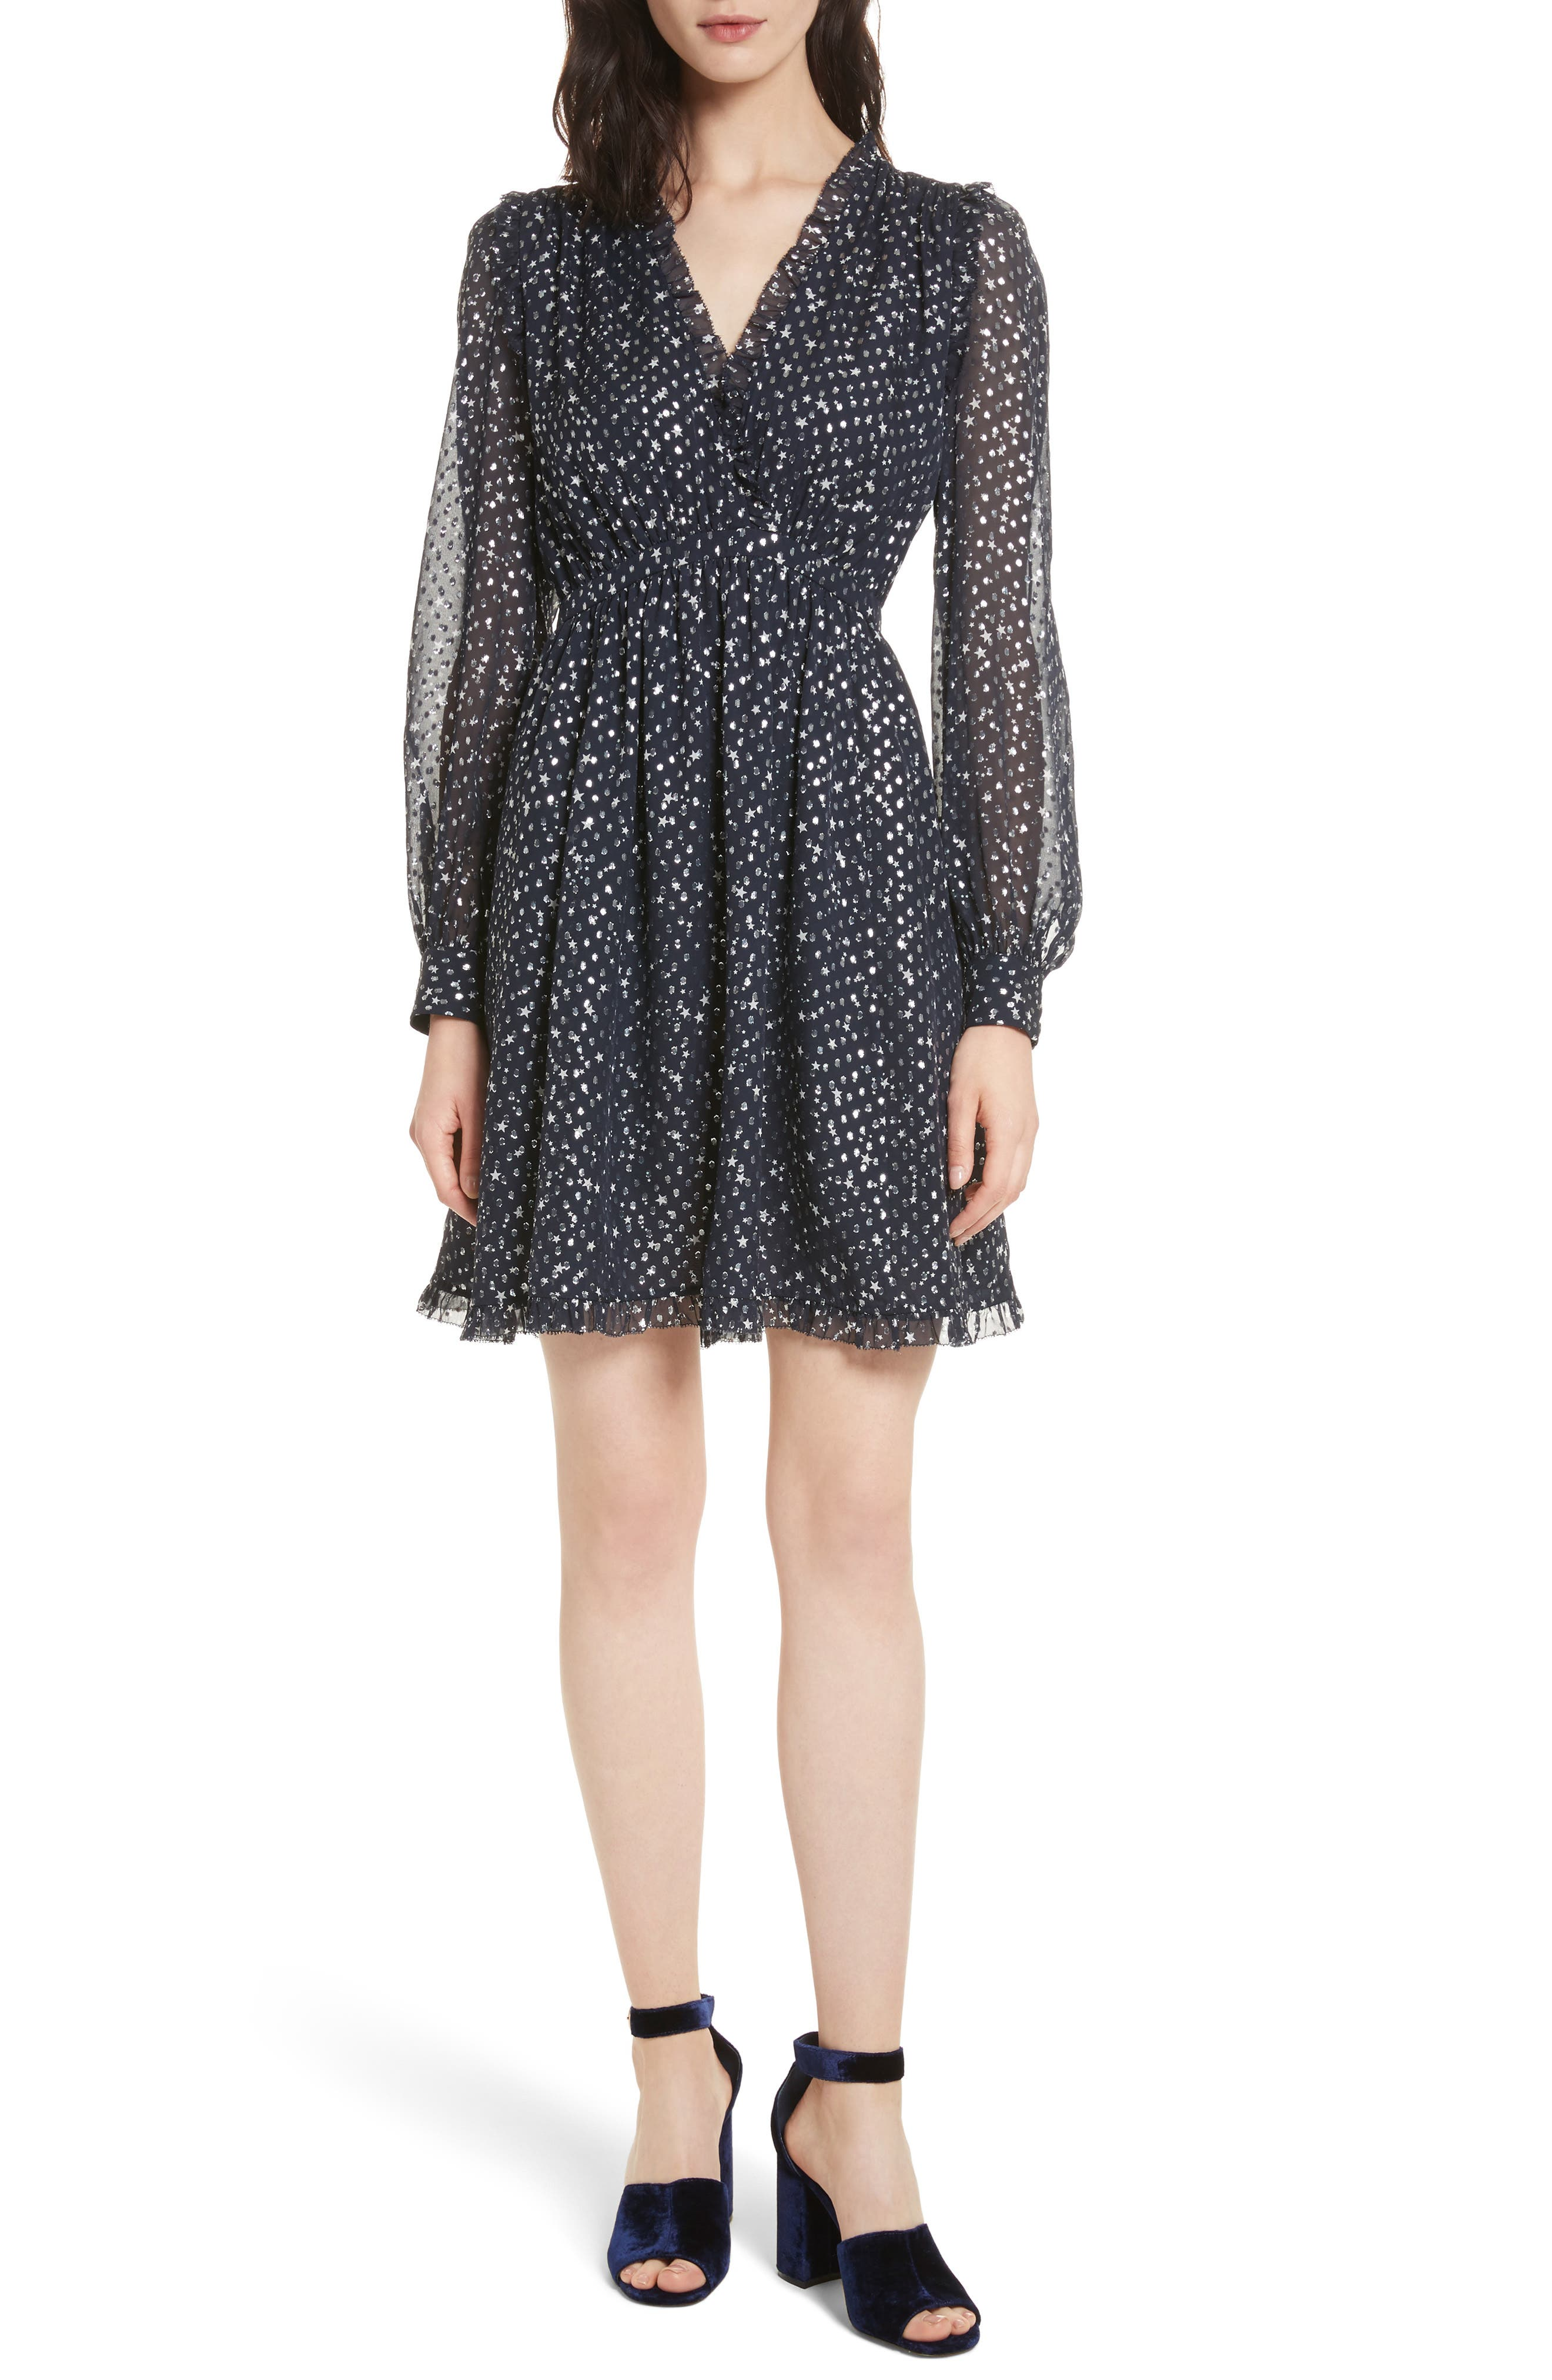 Alternate Image 1 Selected - kate spade new york night sky dot dress